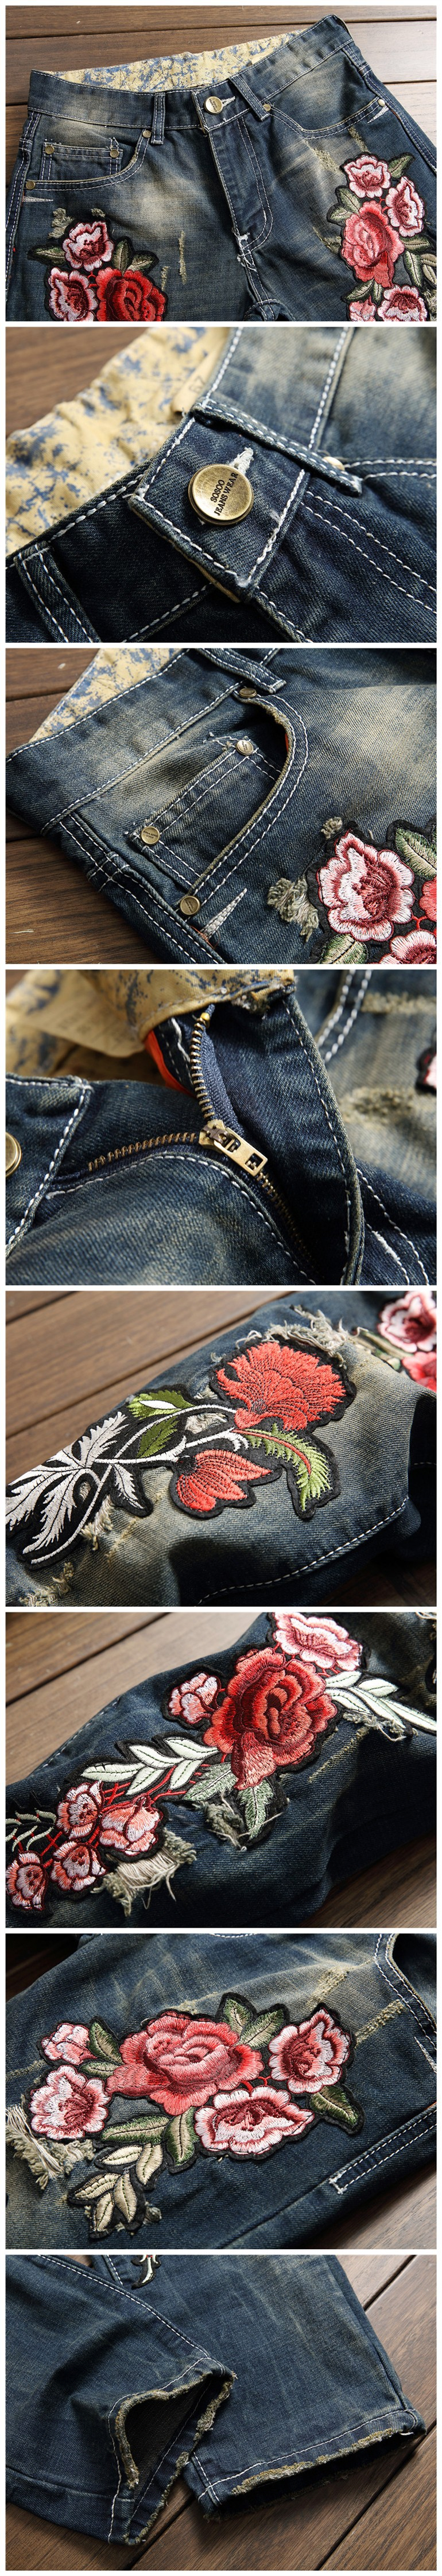 Mens Fashion Jeans Brand Designer Rose Embroidery Denim Trousers Biker Ripped Jeans for Men Distressed Pants European style (7)